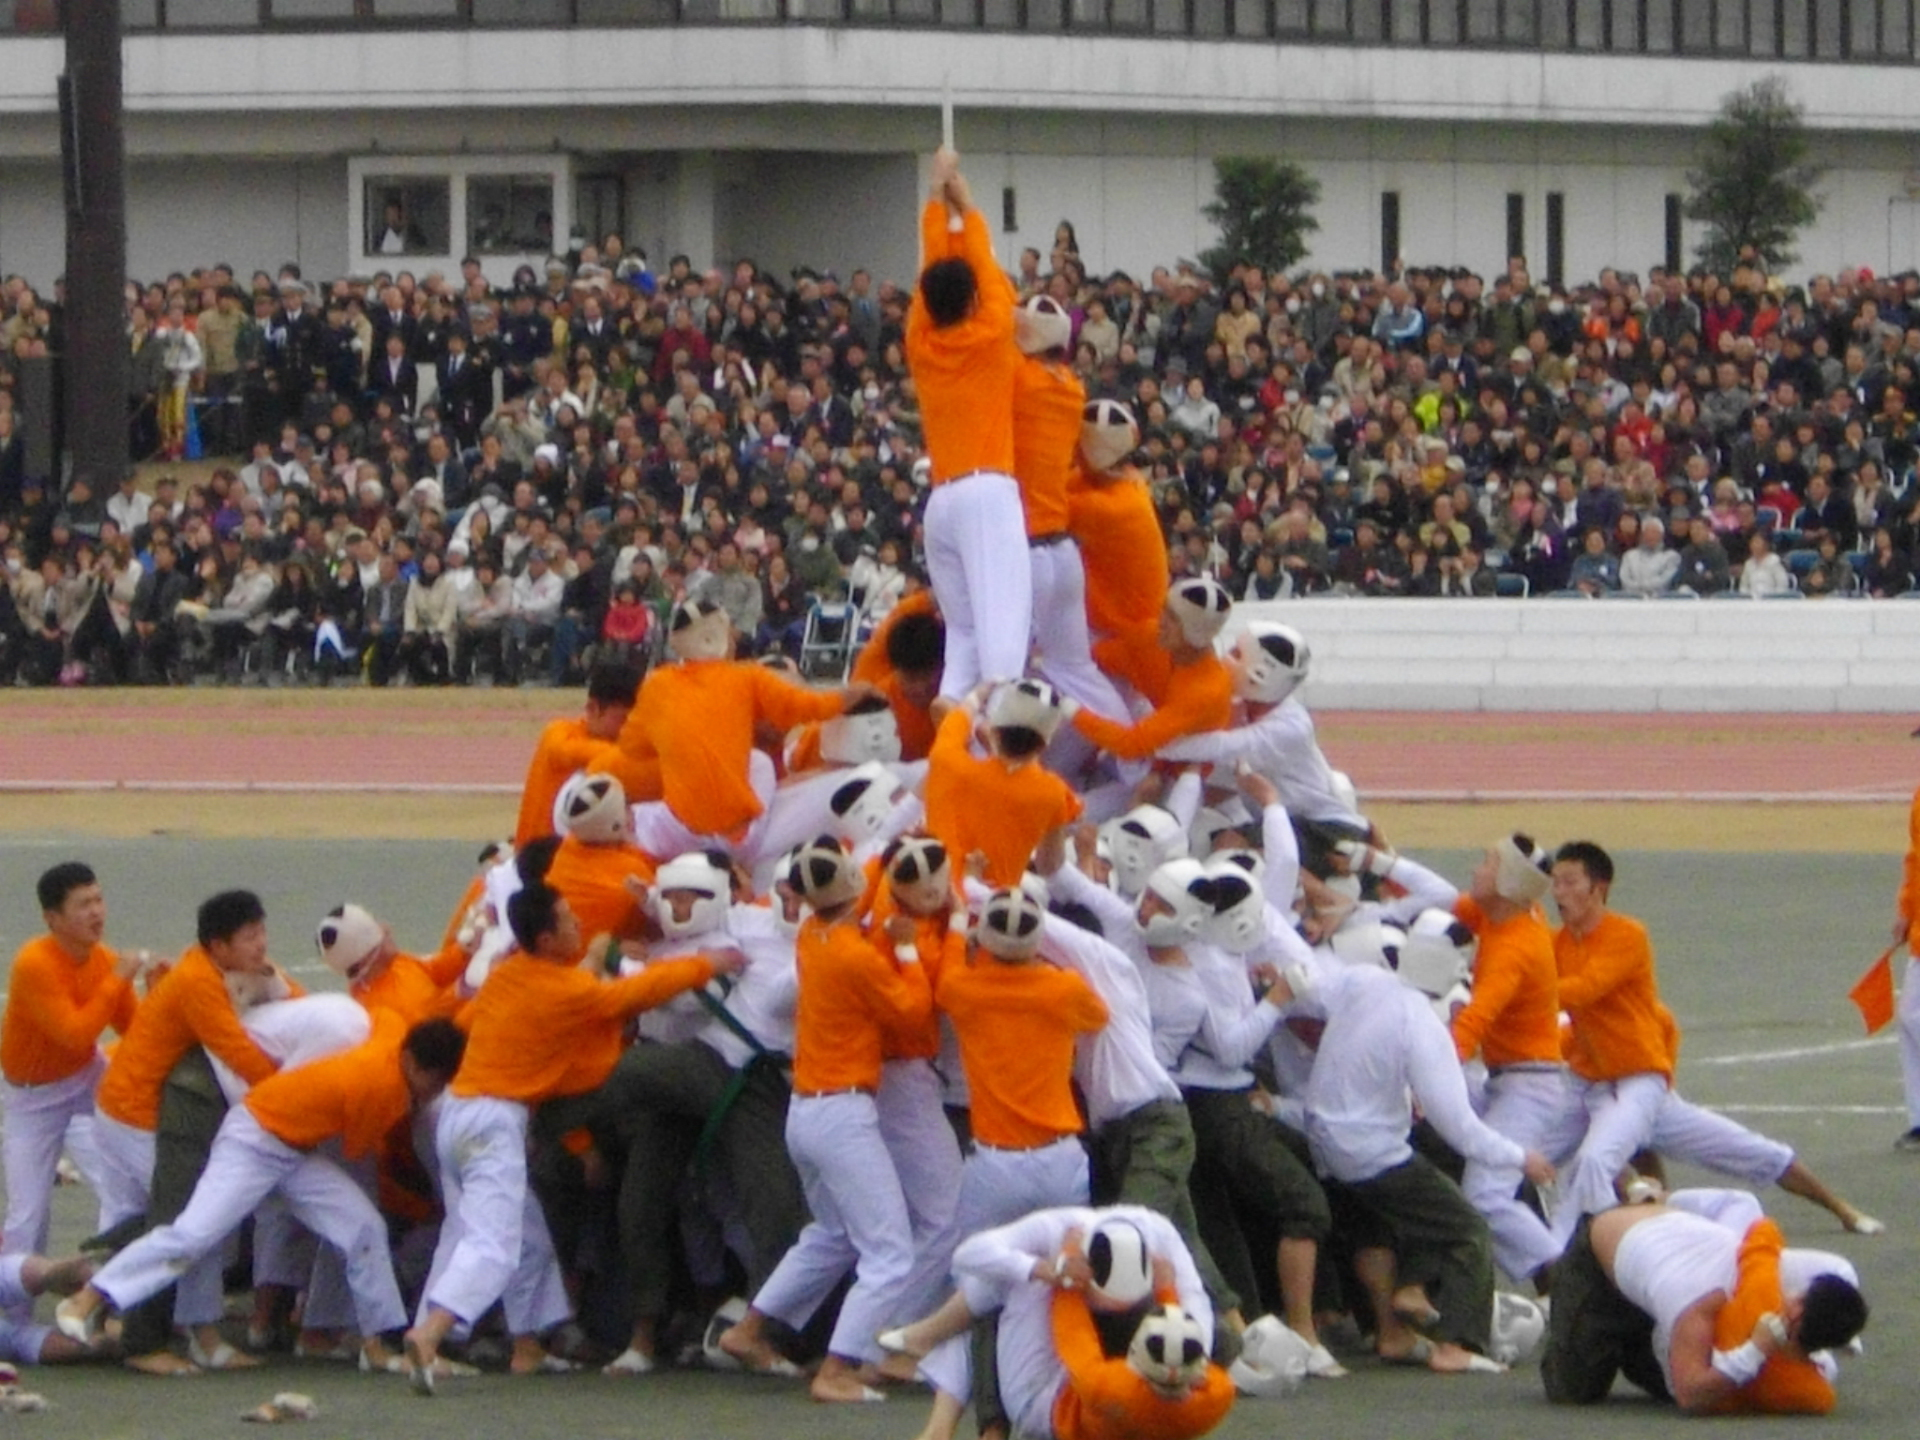 Image of 75 men climbing a pole and hanging from it.